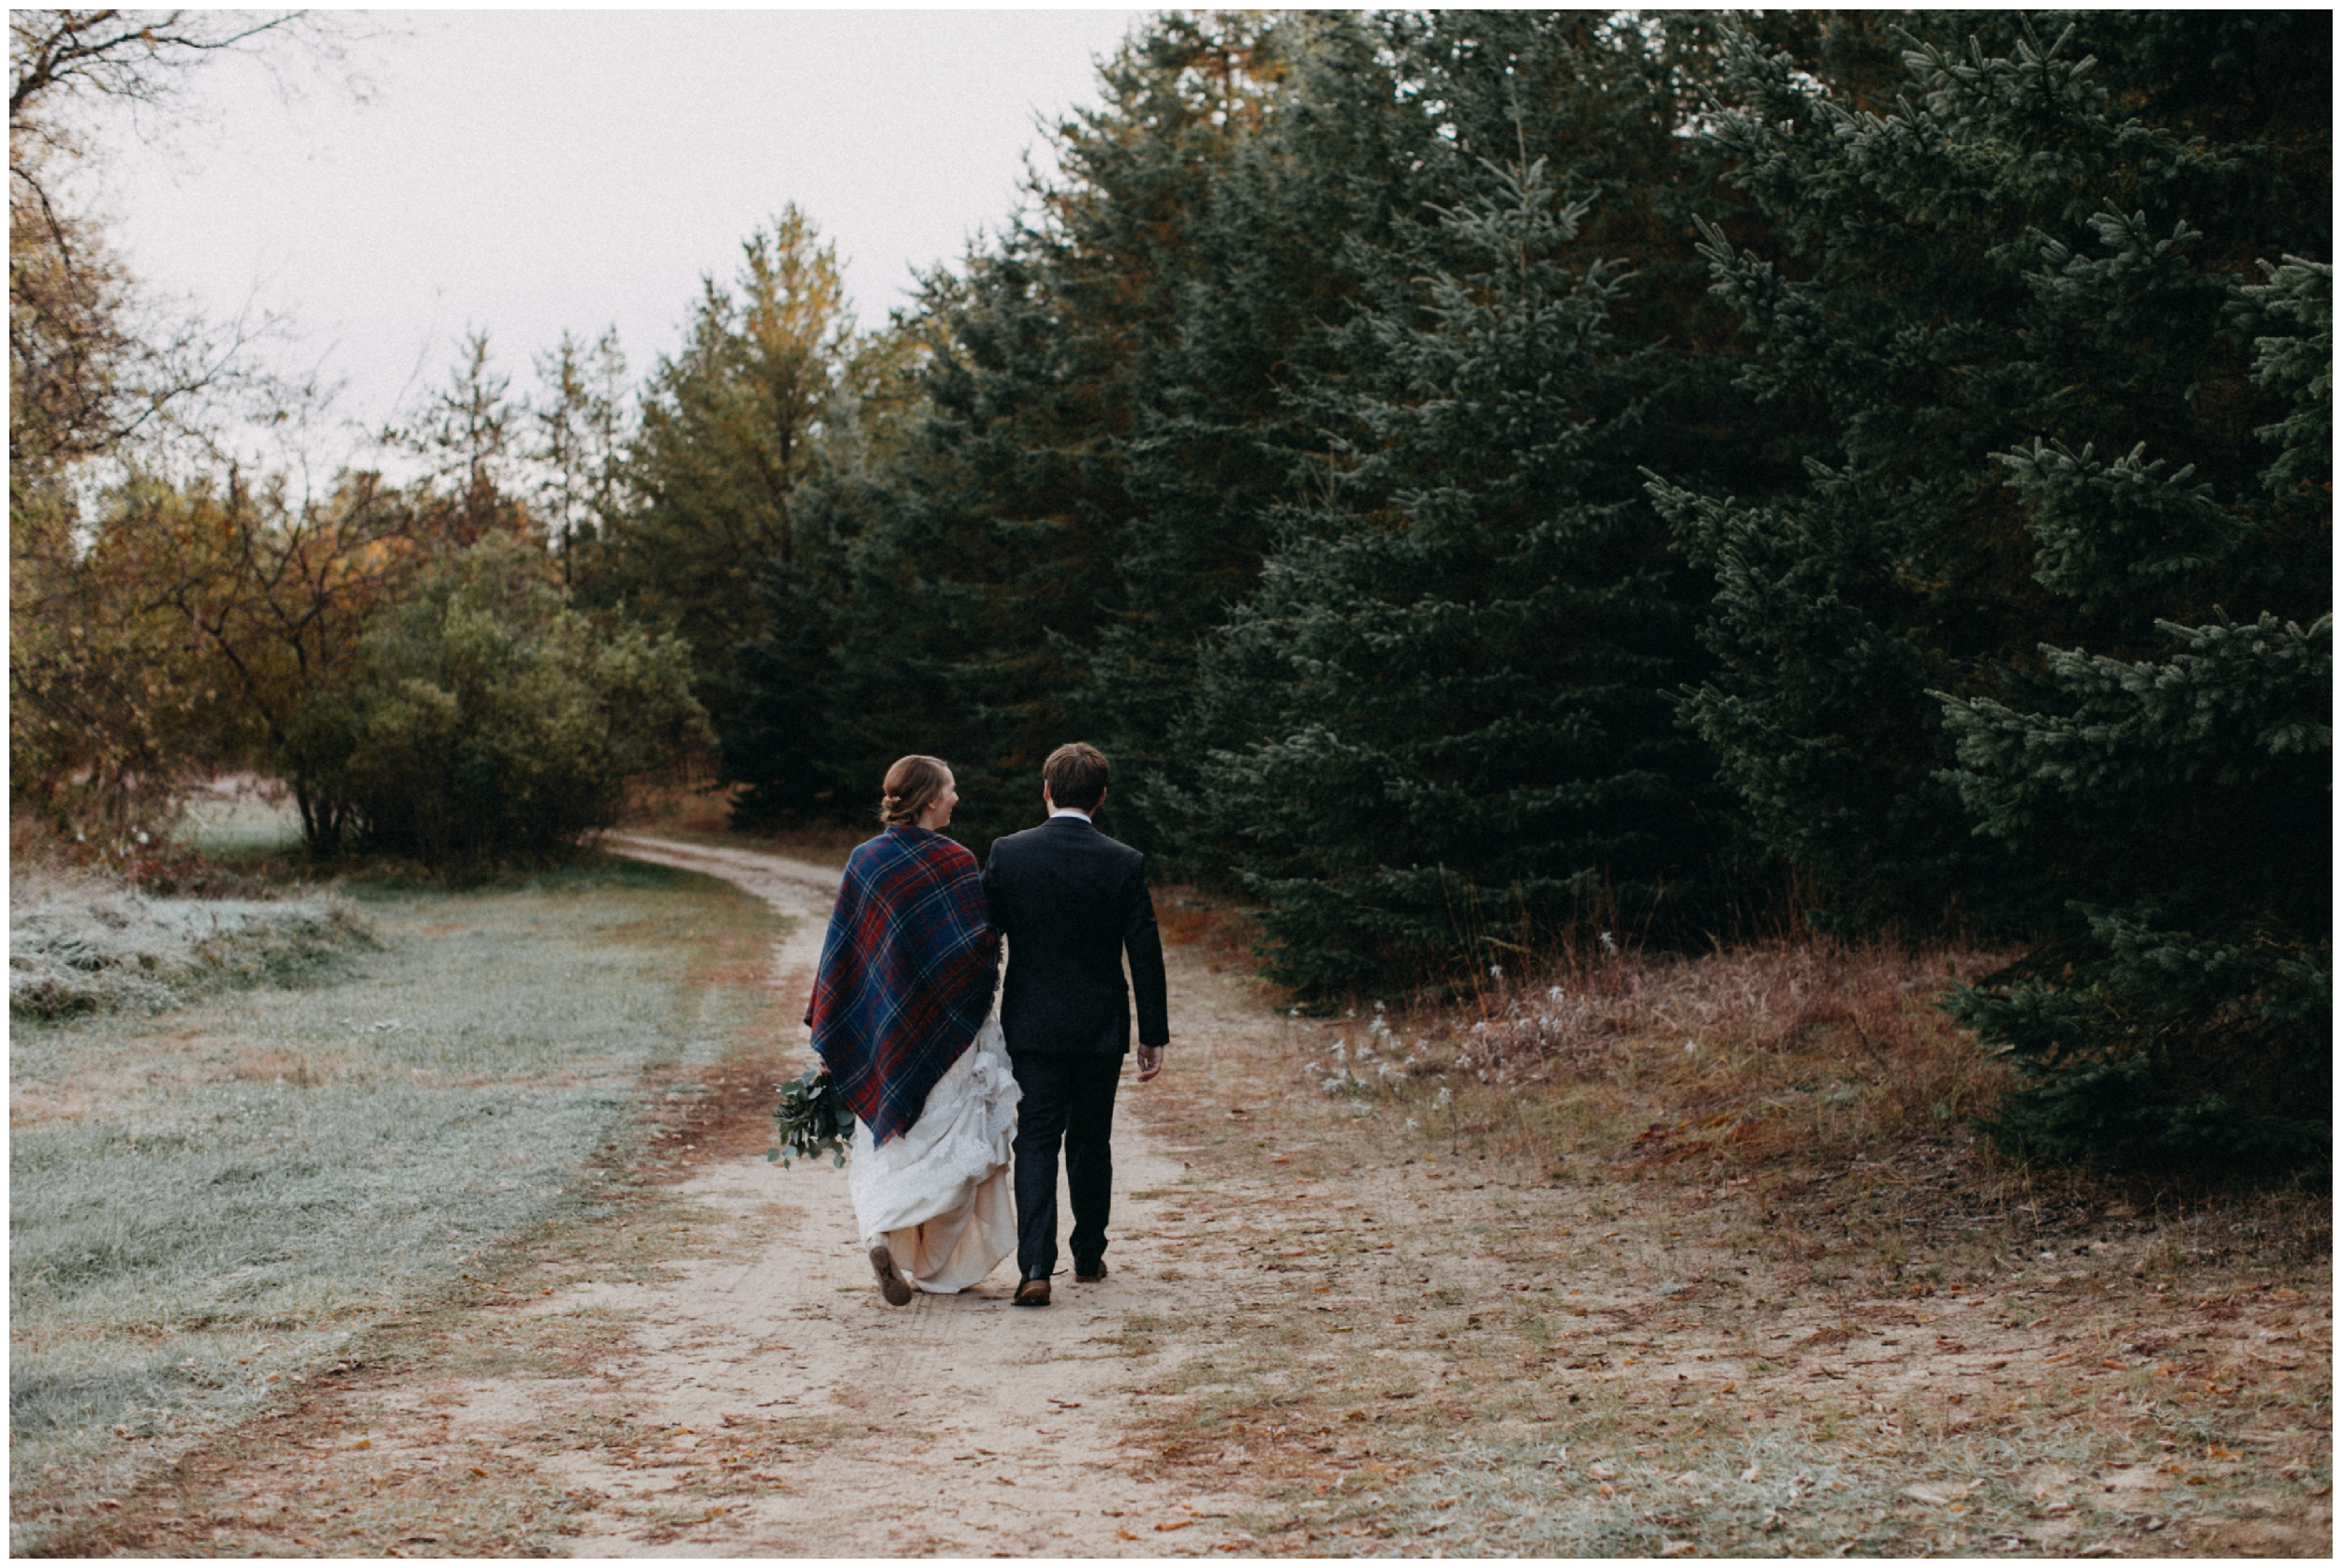 Romantic fall wedding at the Northland Arboretum in Brainerd Minnesota